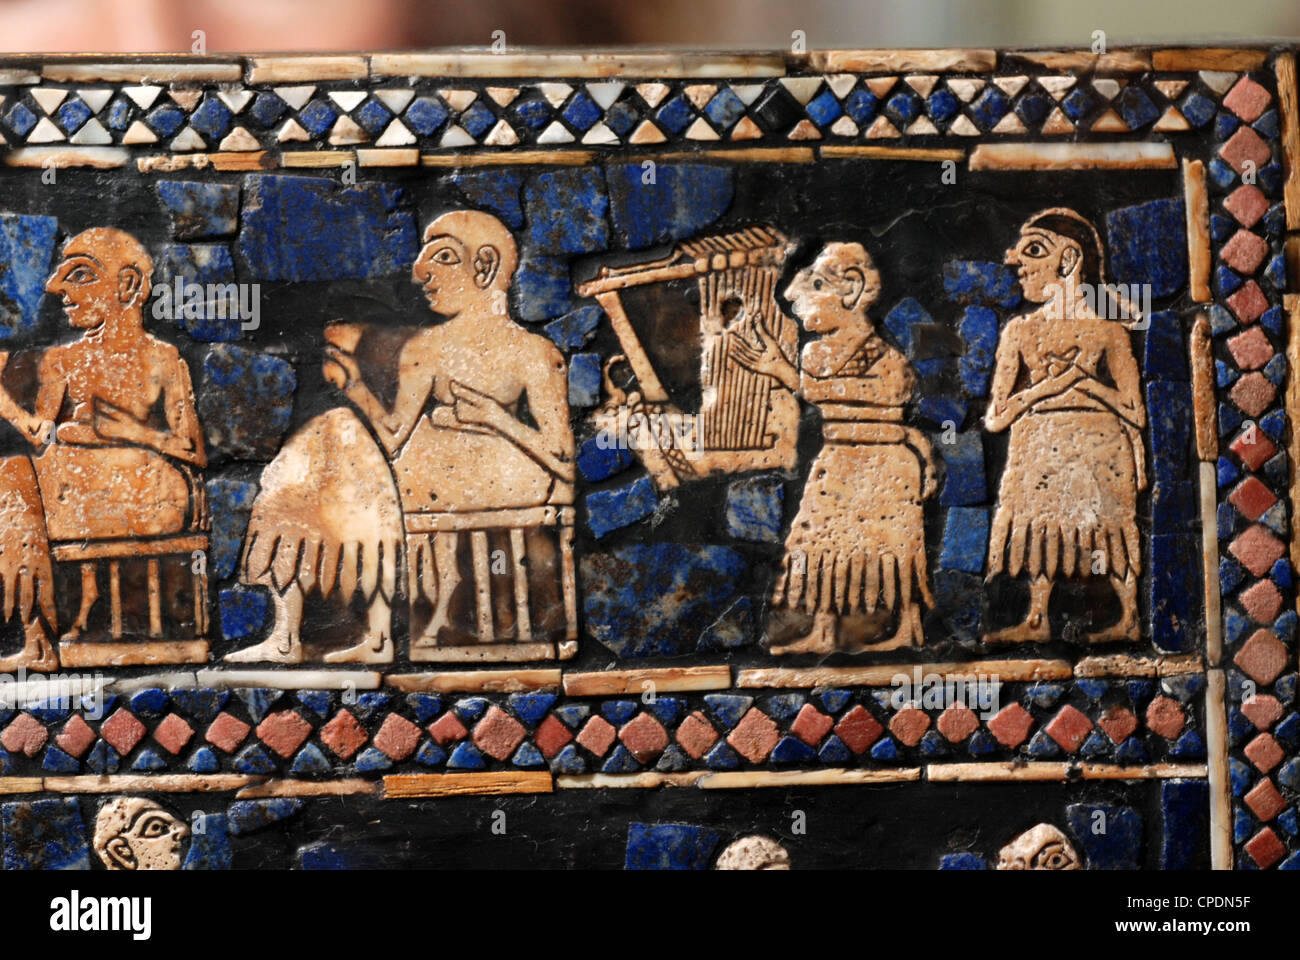 STANDART OF UR, DATING FROM 2600 B.C. AN ELABORATELY DECORATED ART WORK, INLAID WITH SHELL AND LAPIS LAZULI,  DETAIL - Stock Image